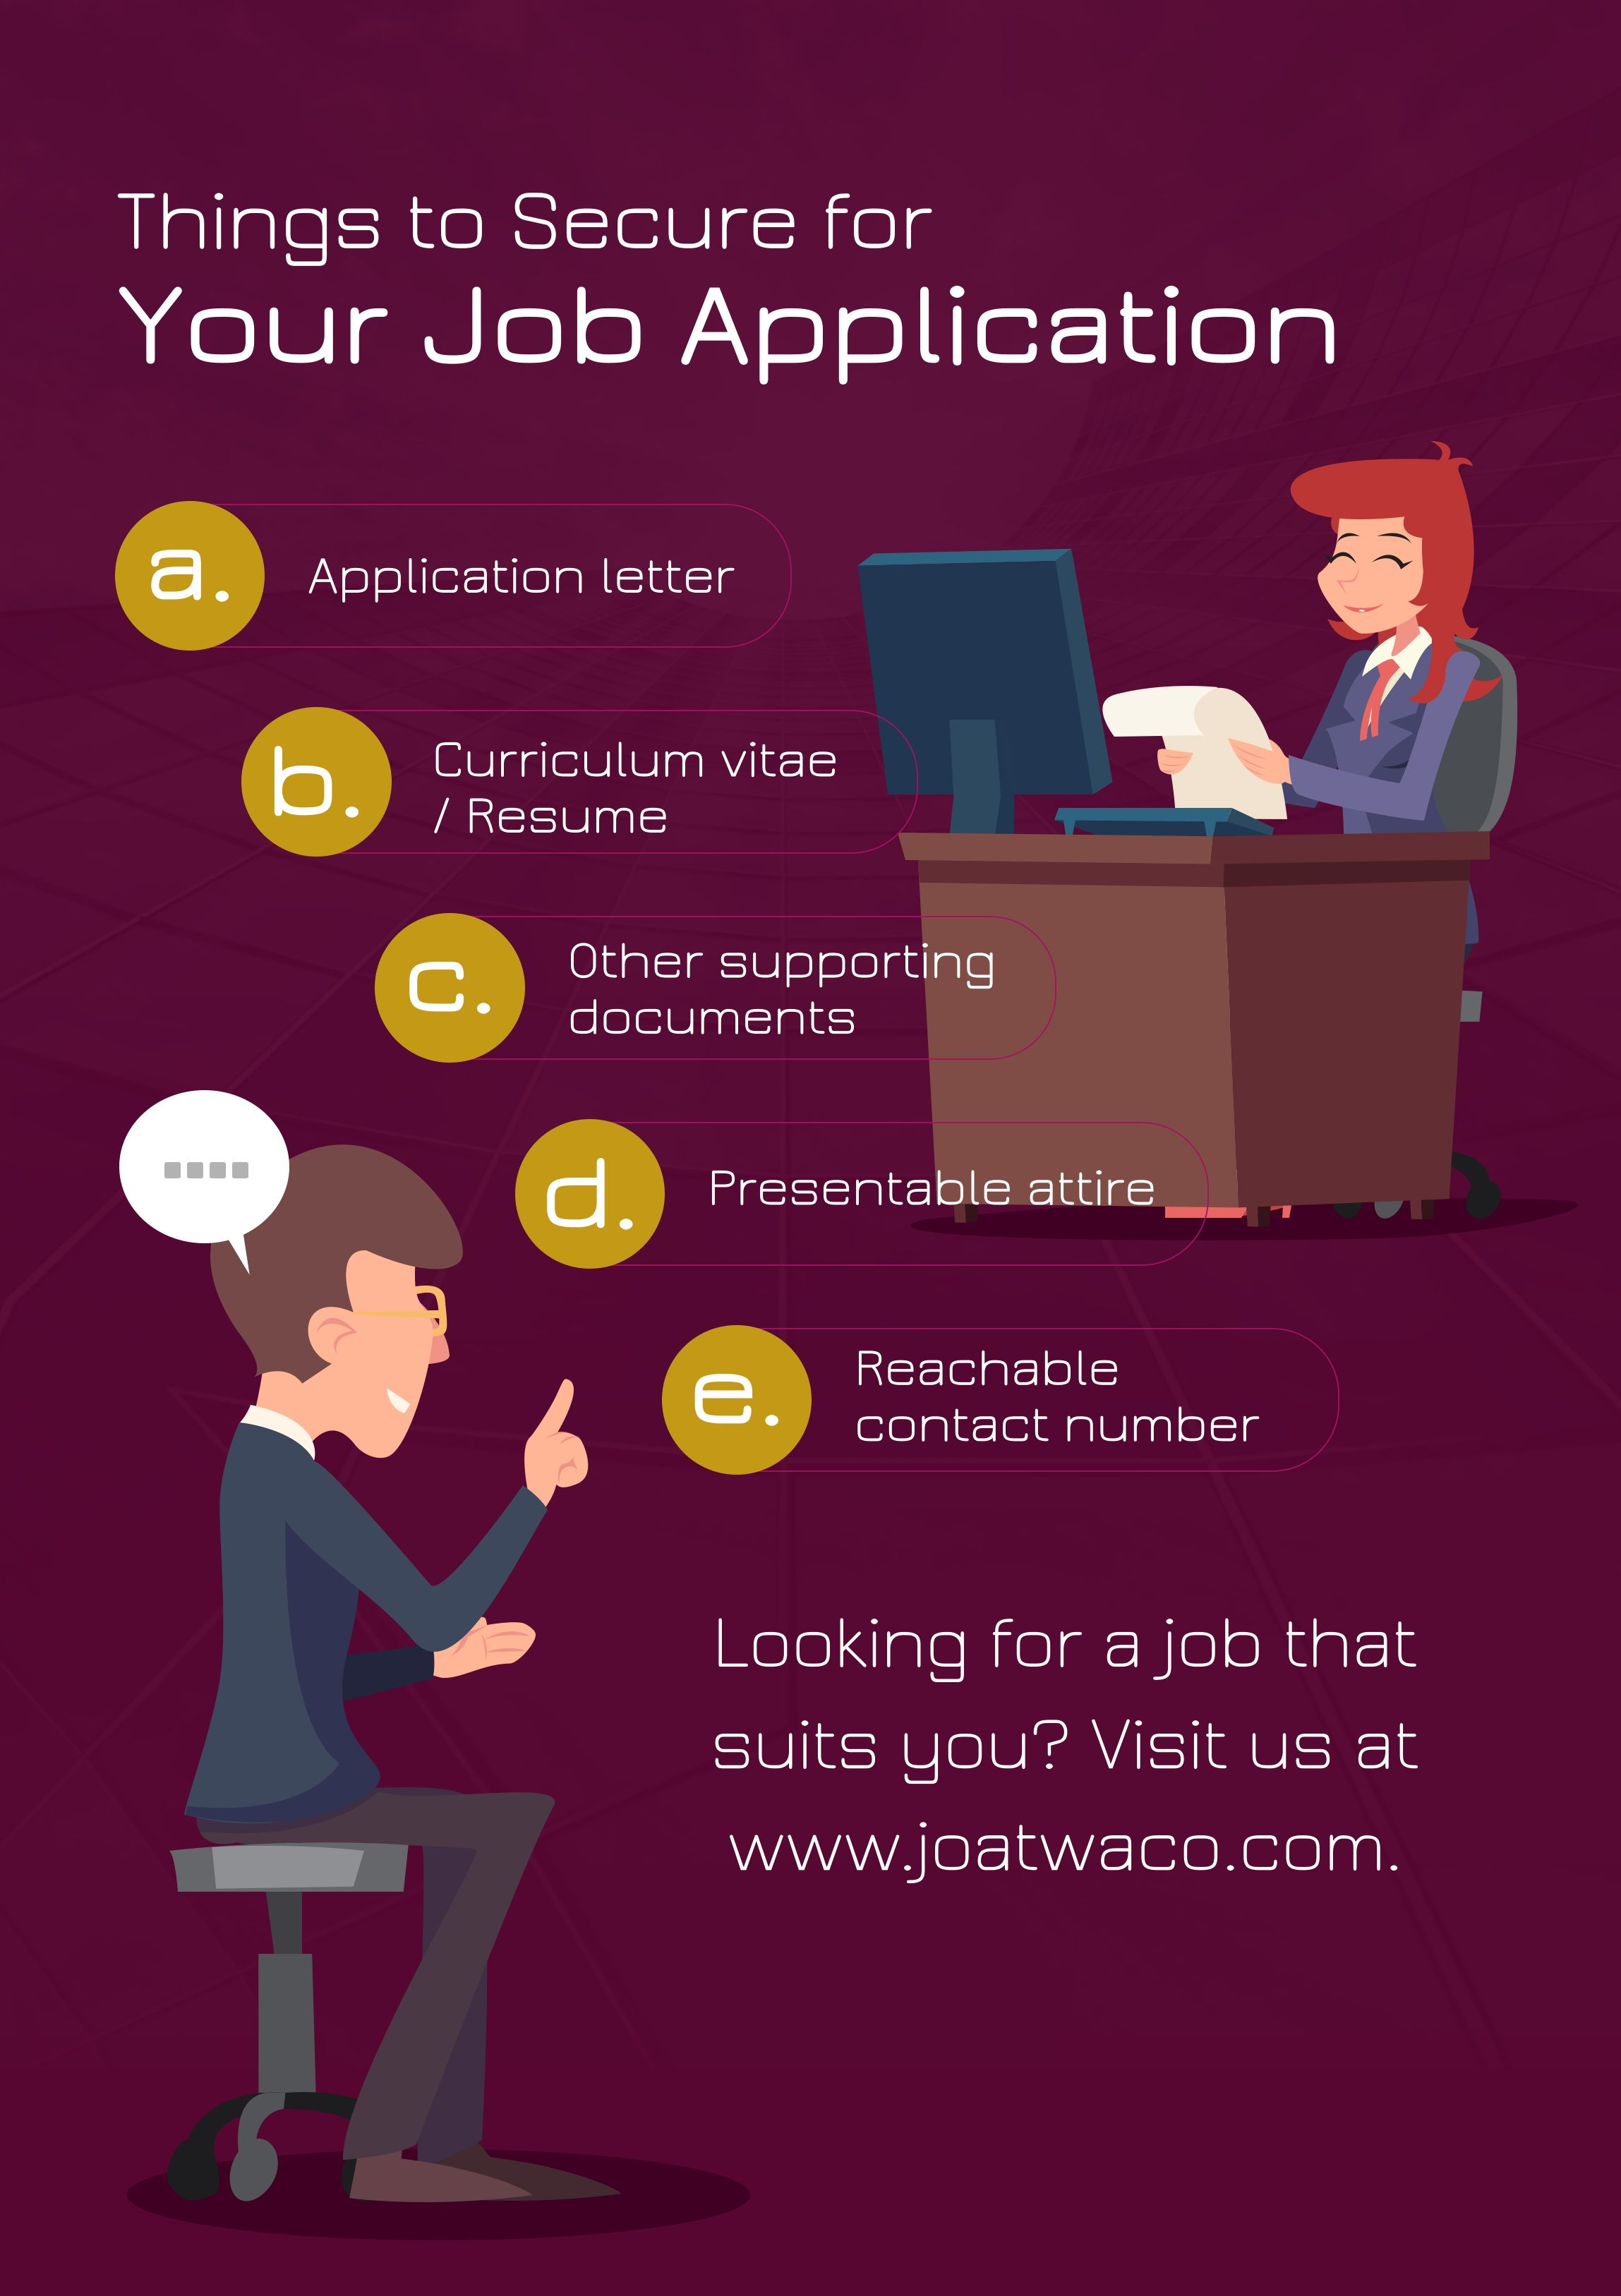 Looking For A Job That Suits You Visit Us At Joatwaco